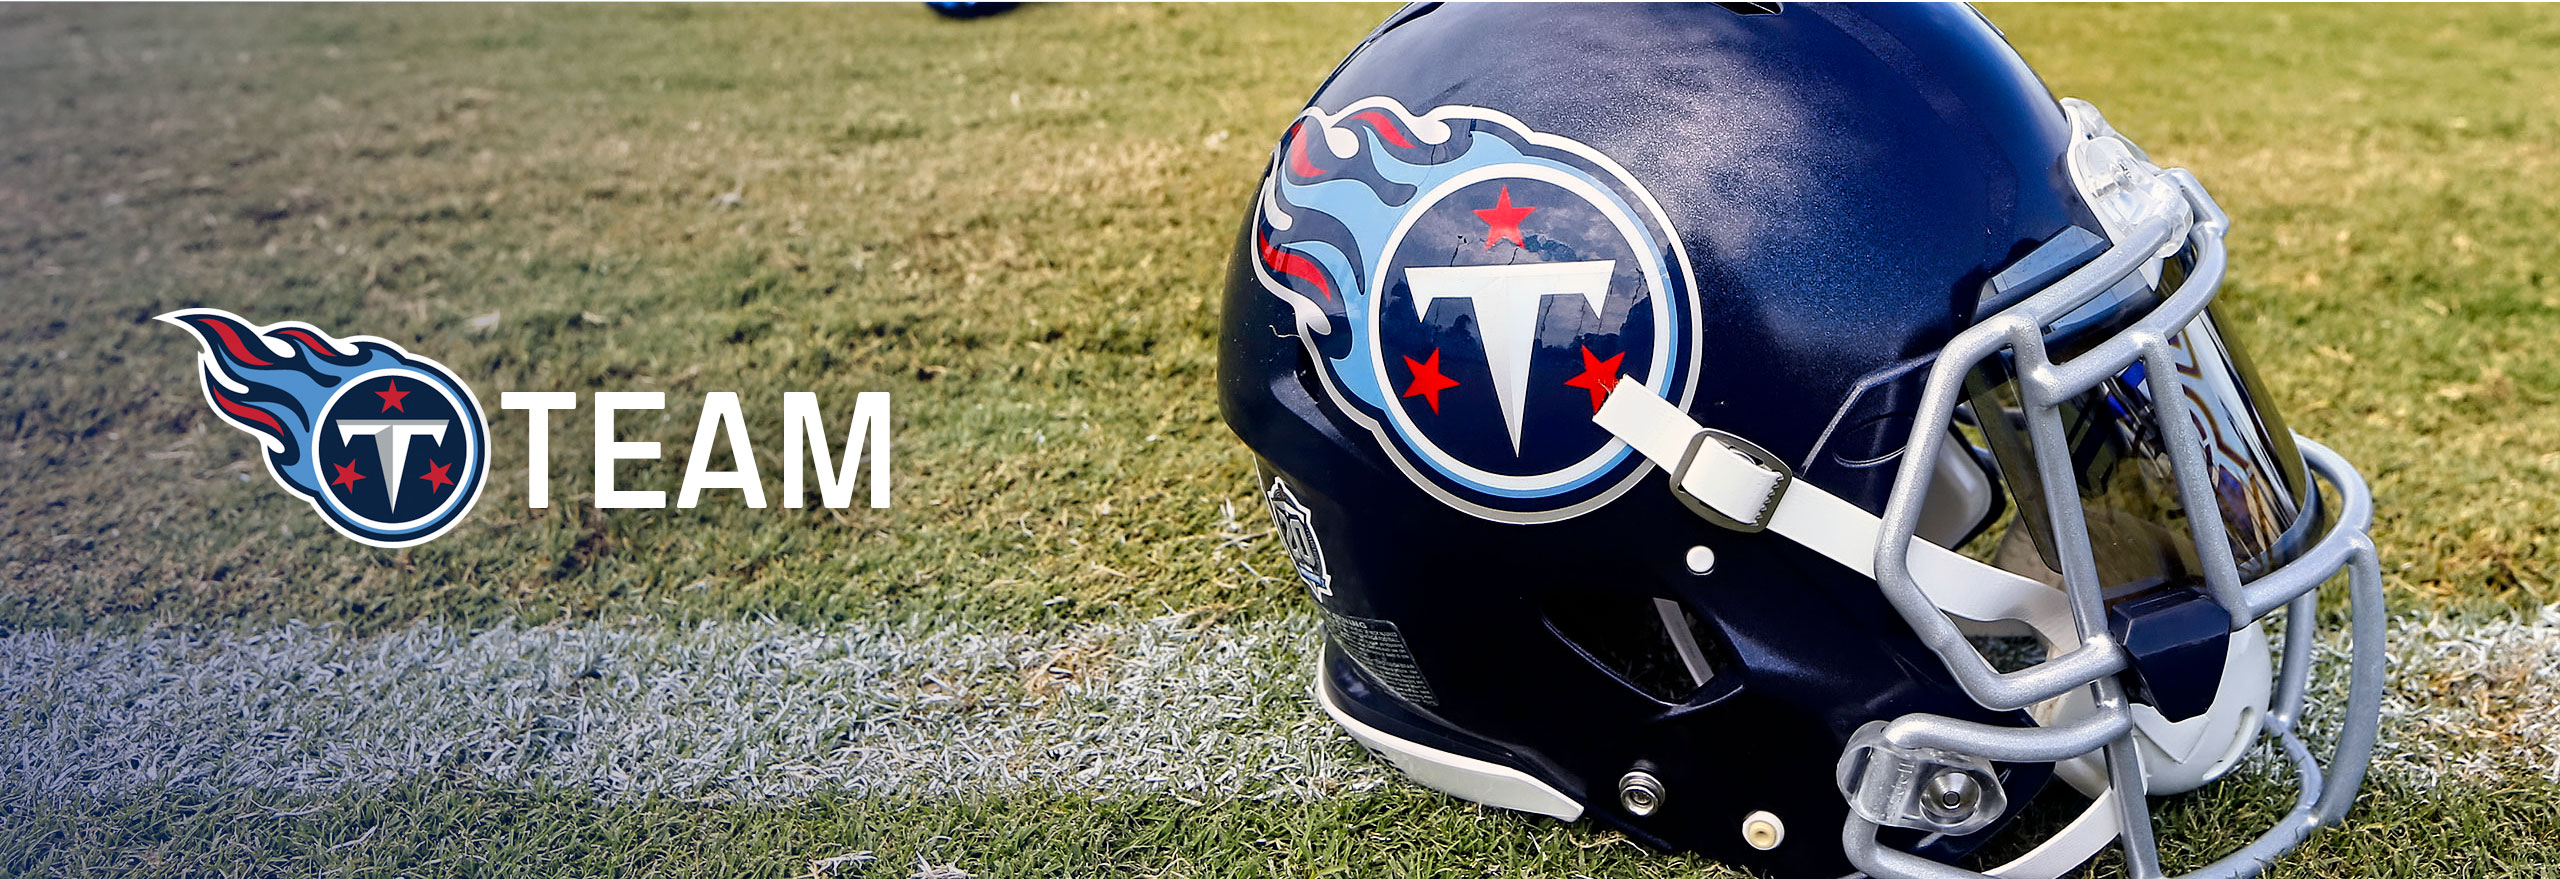 afe15d9b The Official Site of the Tennessee Titans